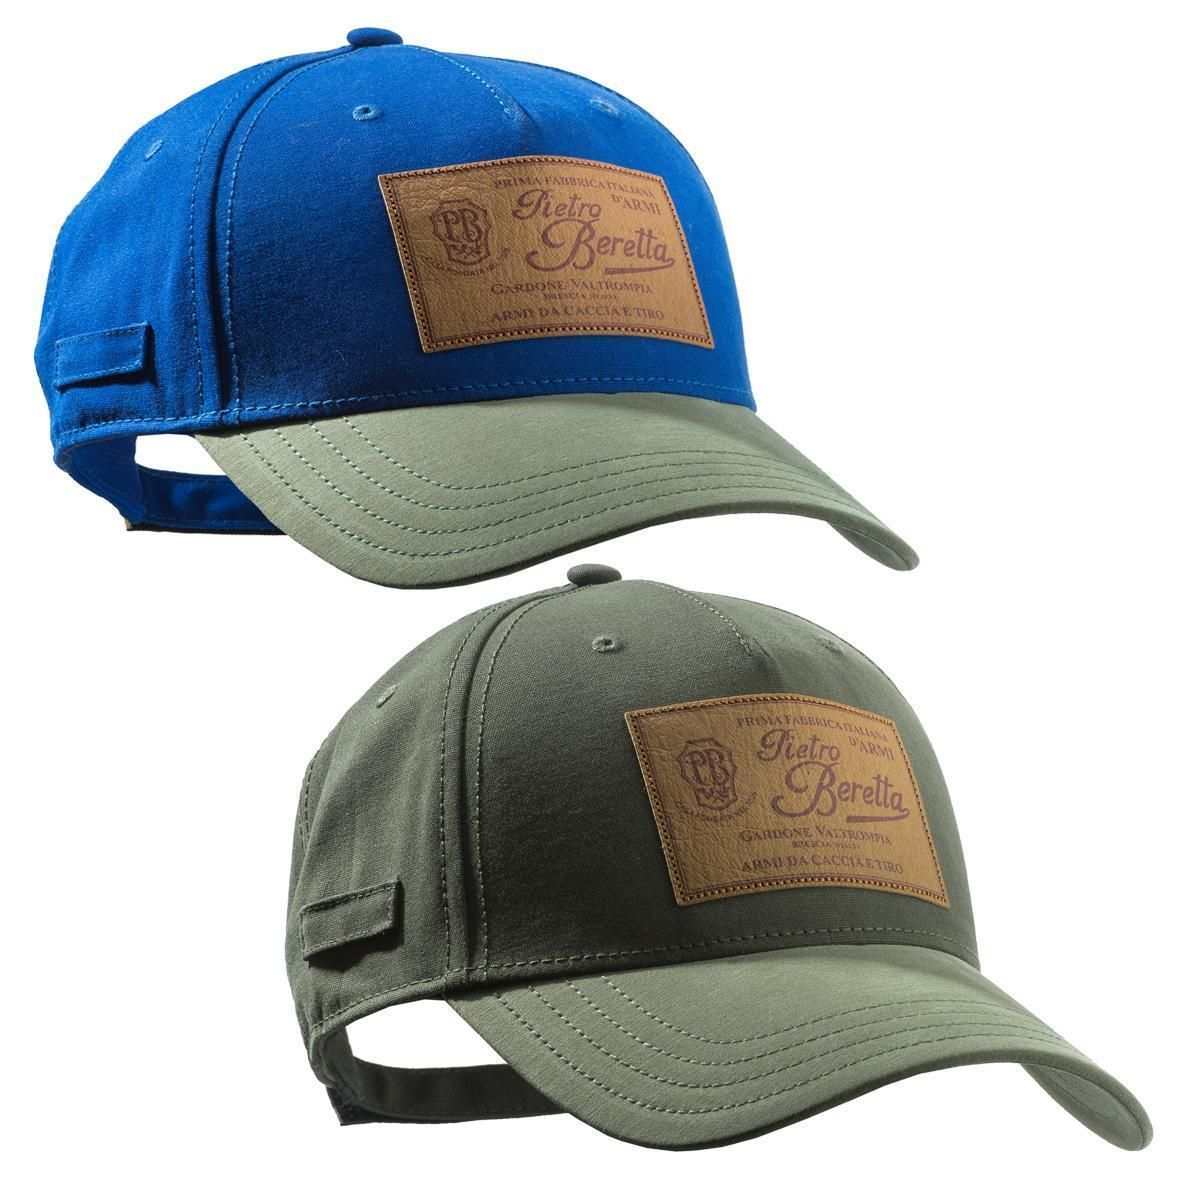 e6cb067839c Beretta P. Beretta Logo Hat Baseball Cap Hunting Shooting Clays Trap BC601